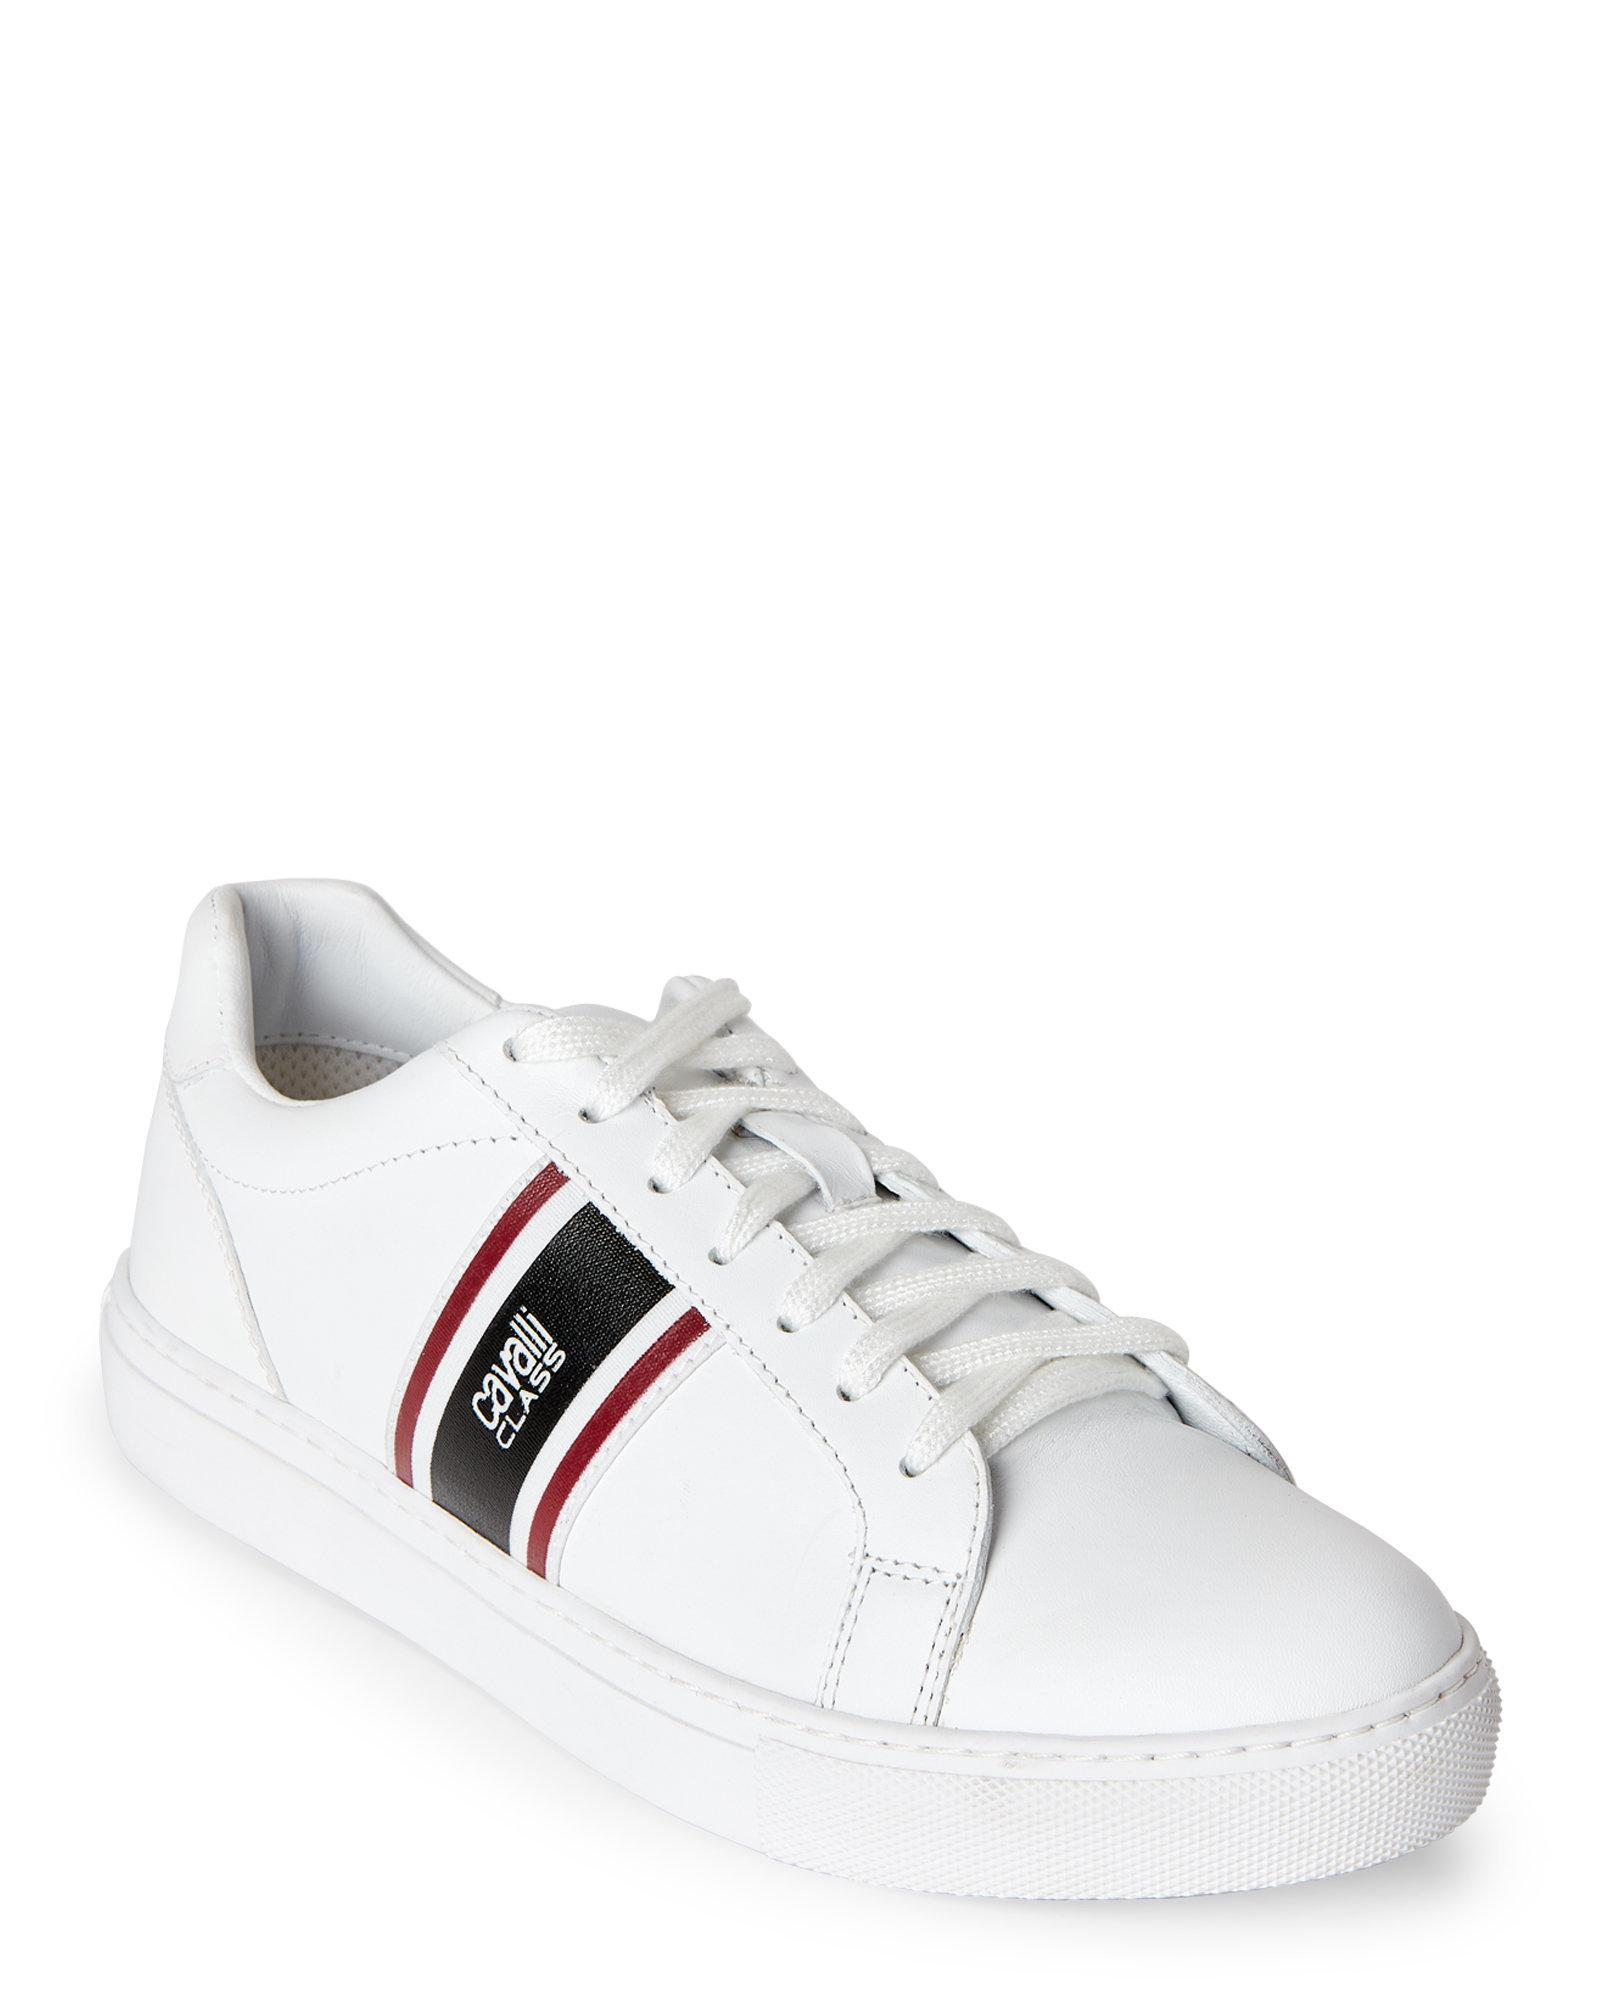 low-top sneakers - White Roberto Cavalli 9lsOHZ3yZ